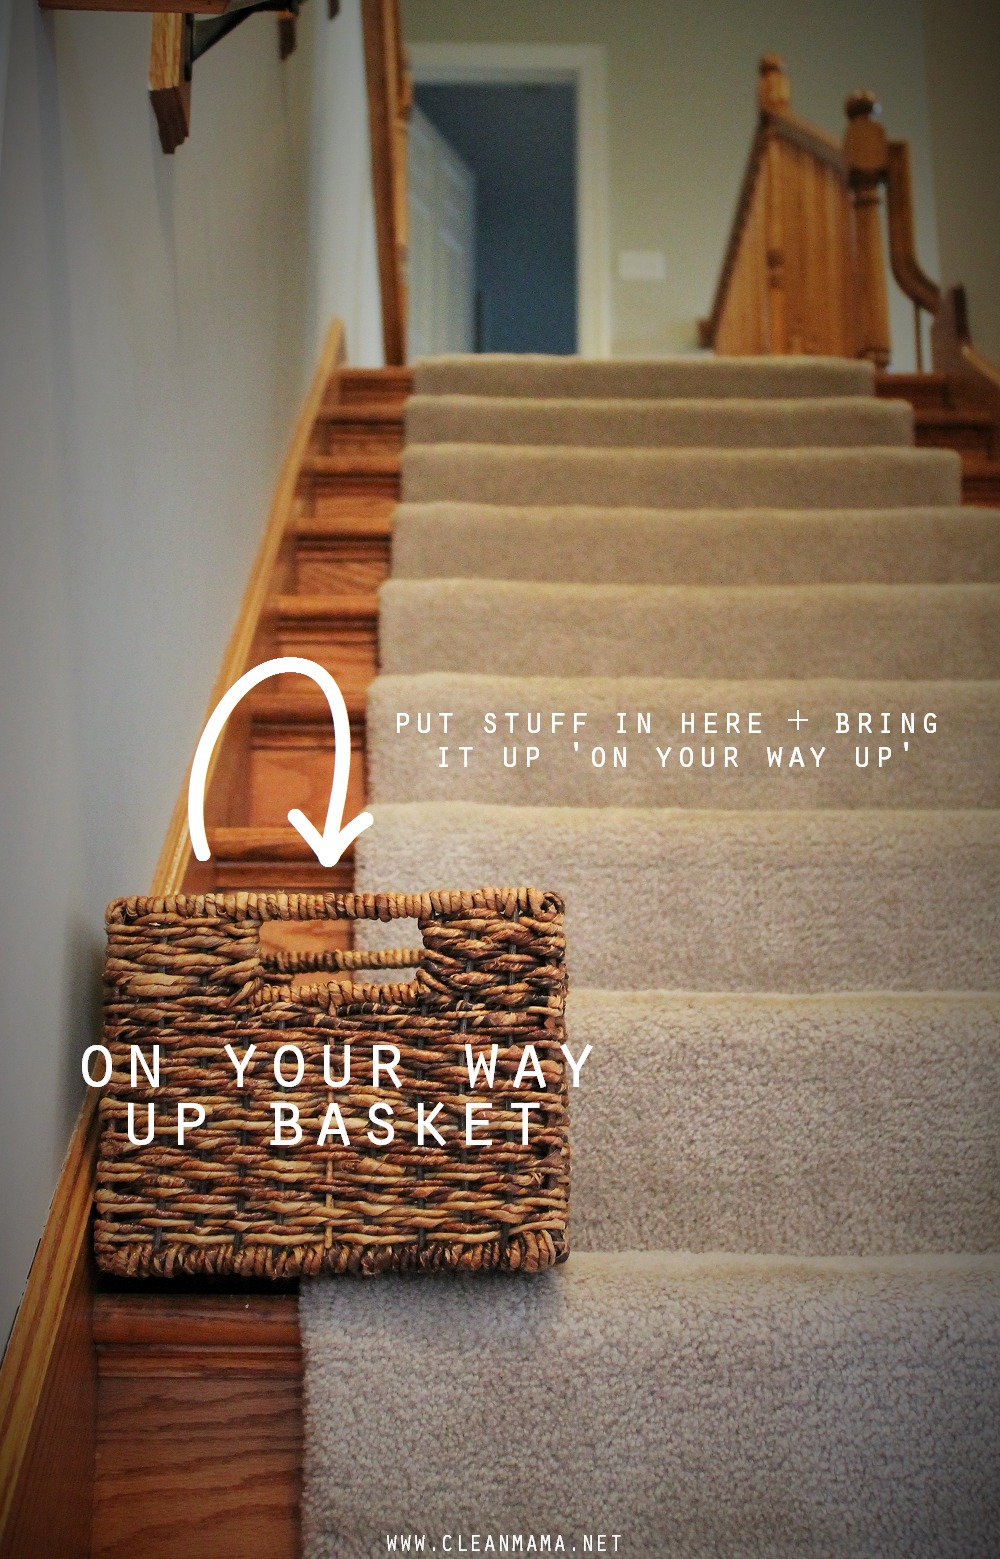 Put Stuff In Here and Bring It Up 'On Your Way Up' via Clean Mama